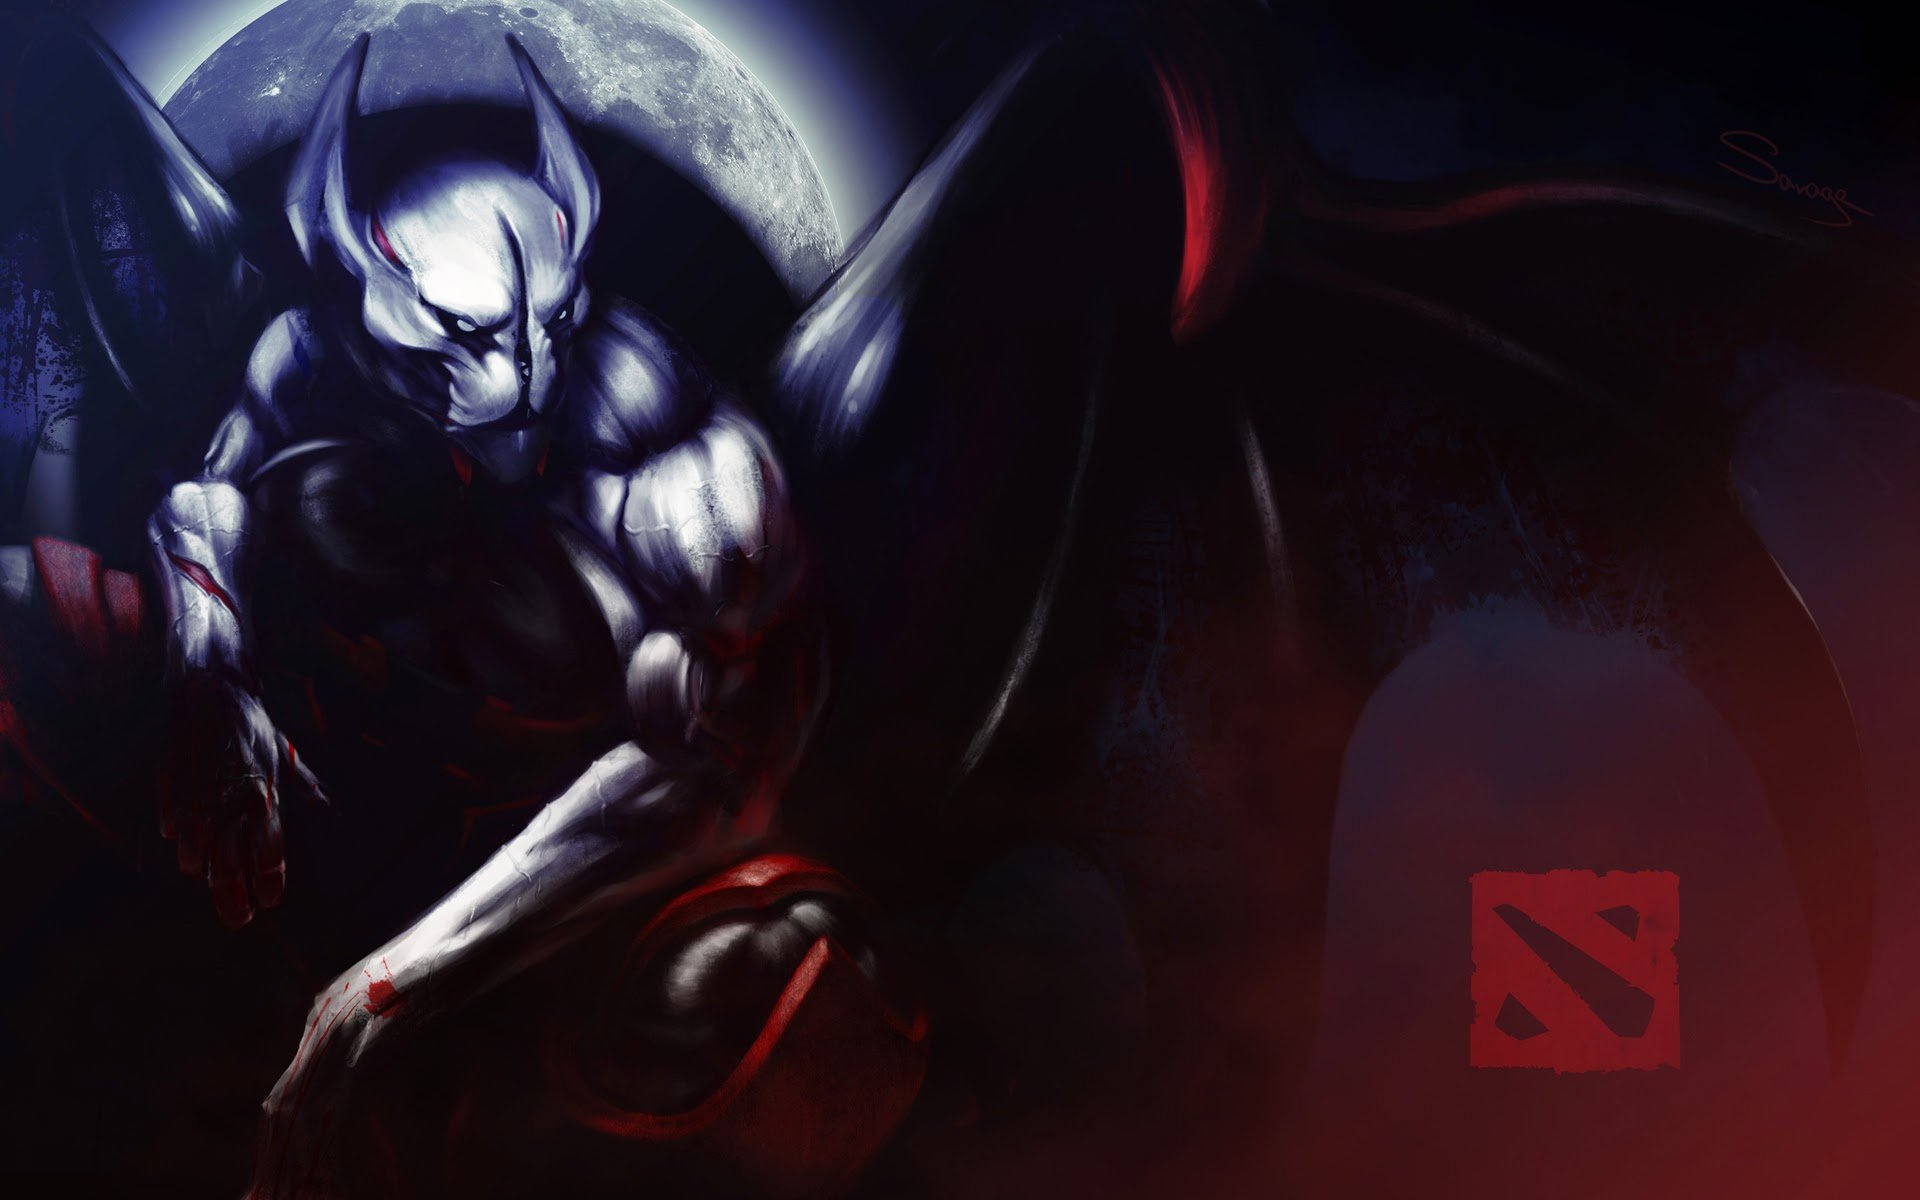 Nigh Stalker Dota 2 Hd Wallpaper Night Stalker Dota 2 Hd 1985384 Hd Wallpaper Backgrounds Download